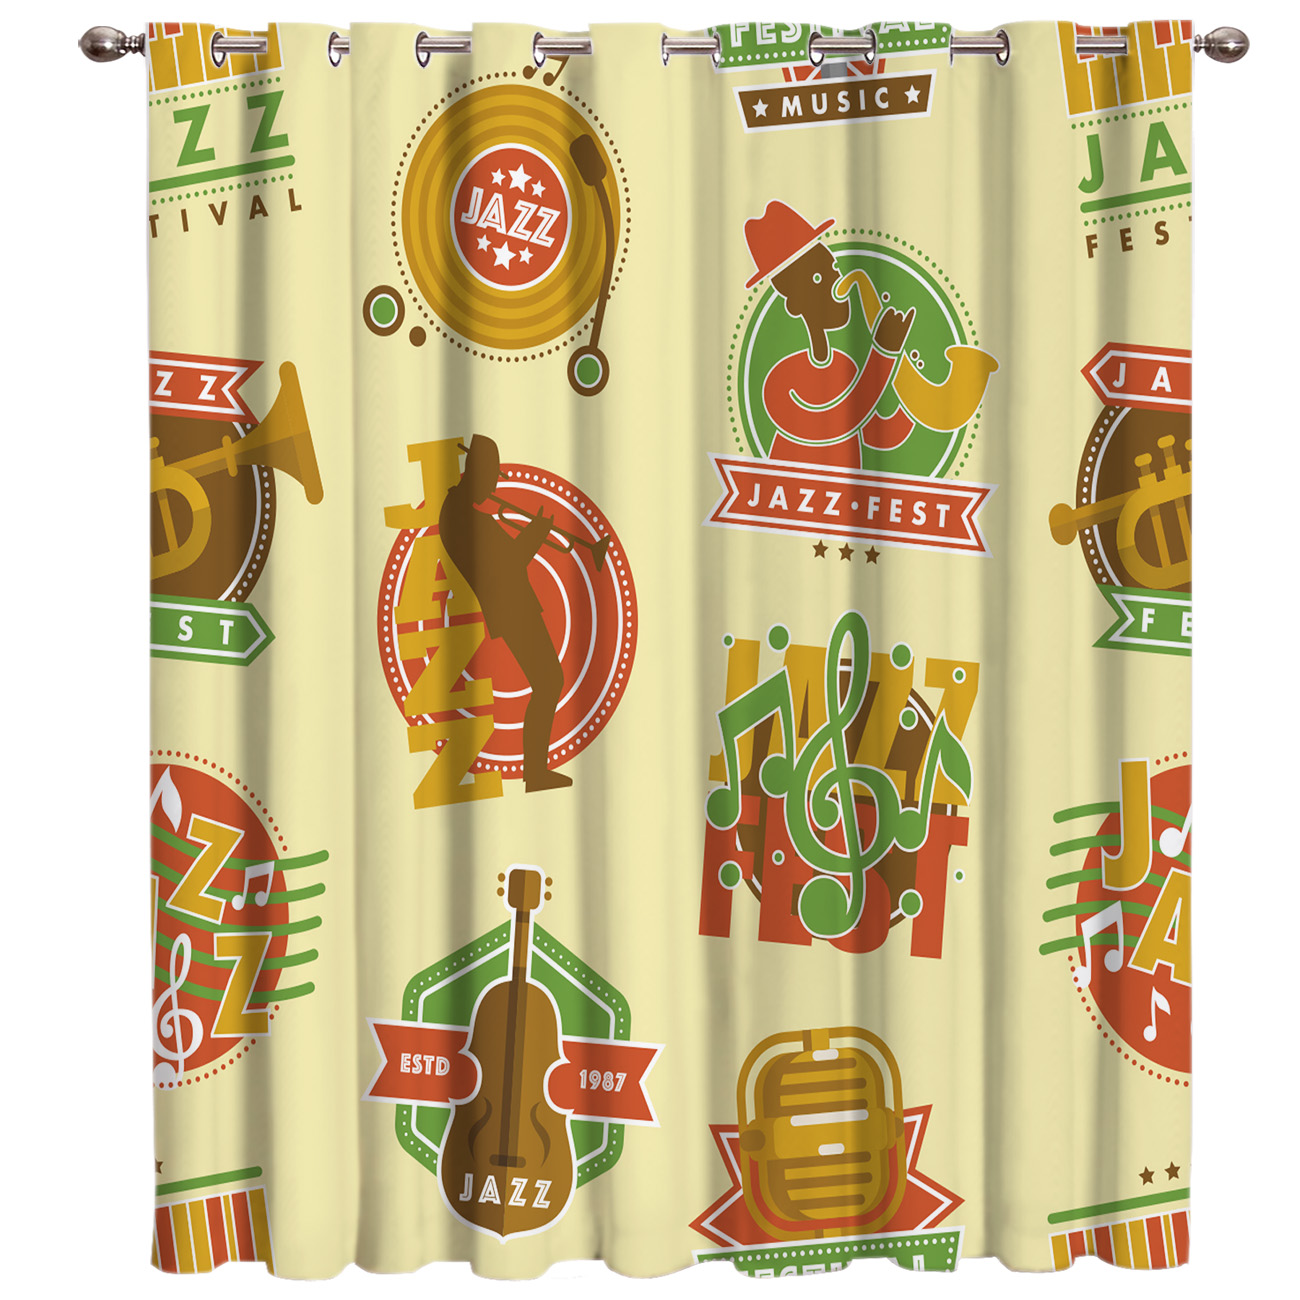 Jazz Band Window Treatments Curtains Valance Room Curtains Large Window Curtain Lights Bathroom Outdoor Drapes Decor Window